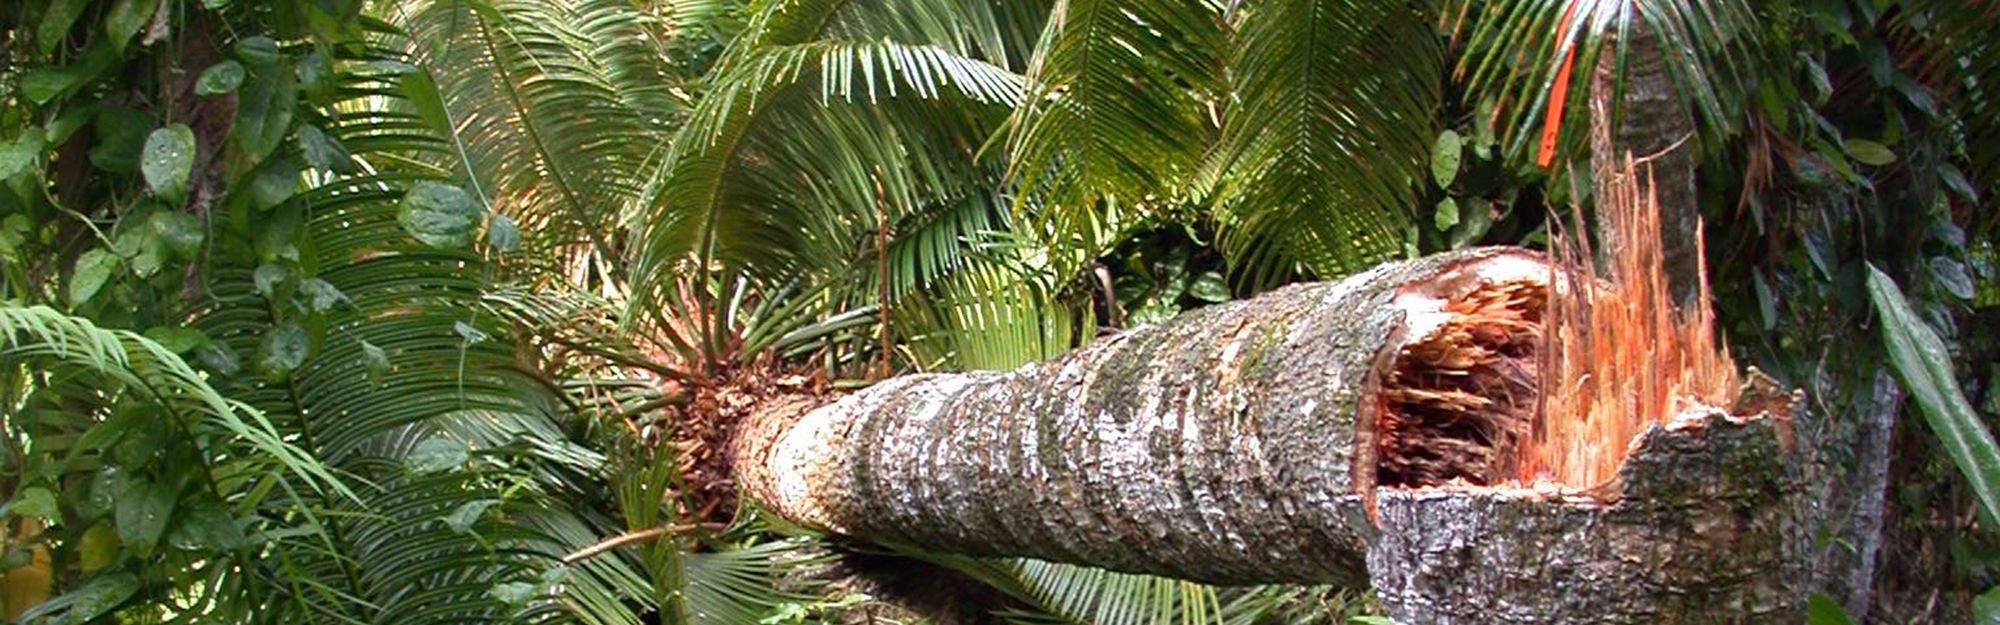 Damage to cycads from cycad scale and butterflies cause a reduction in stem strength.